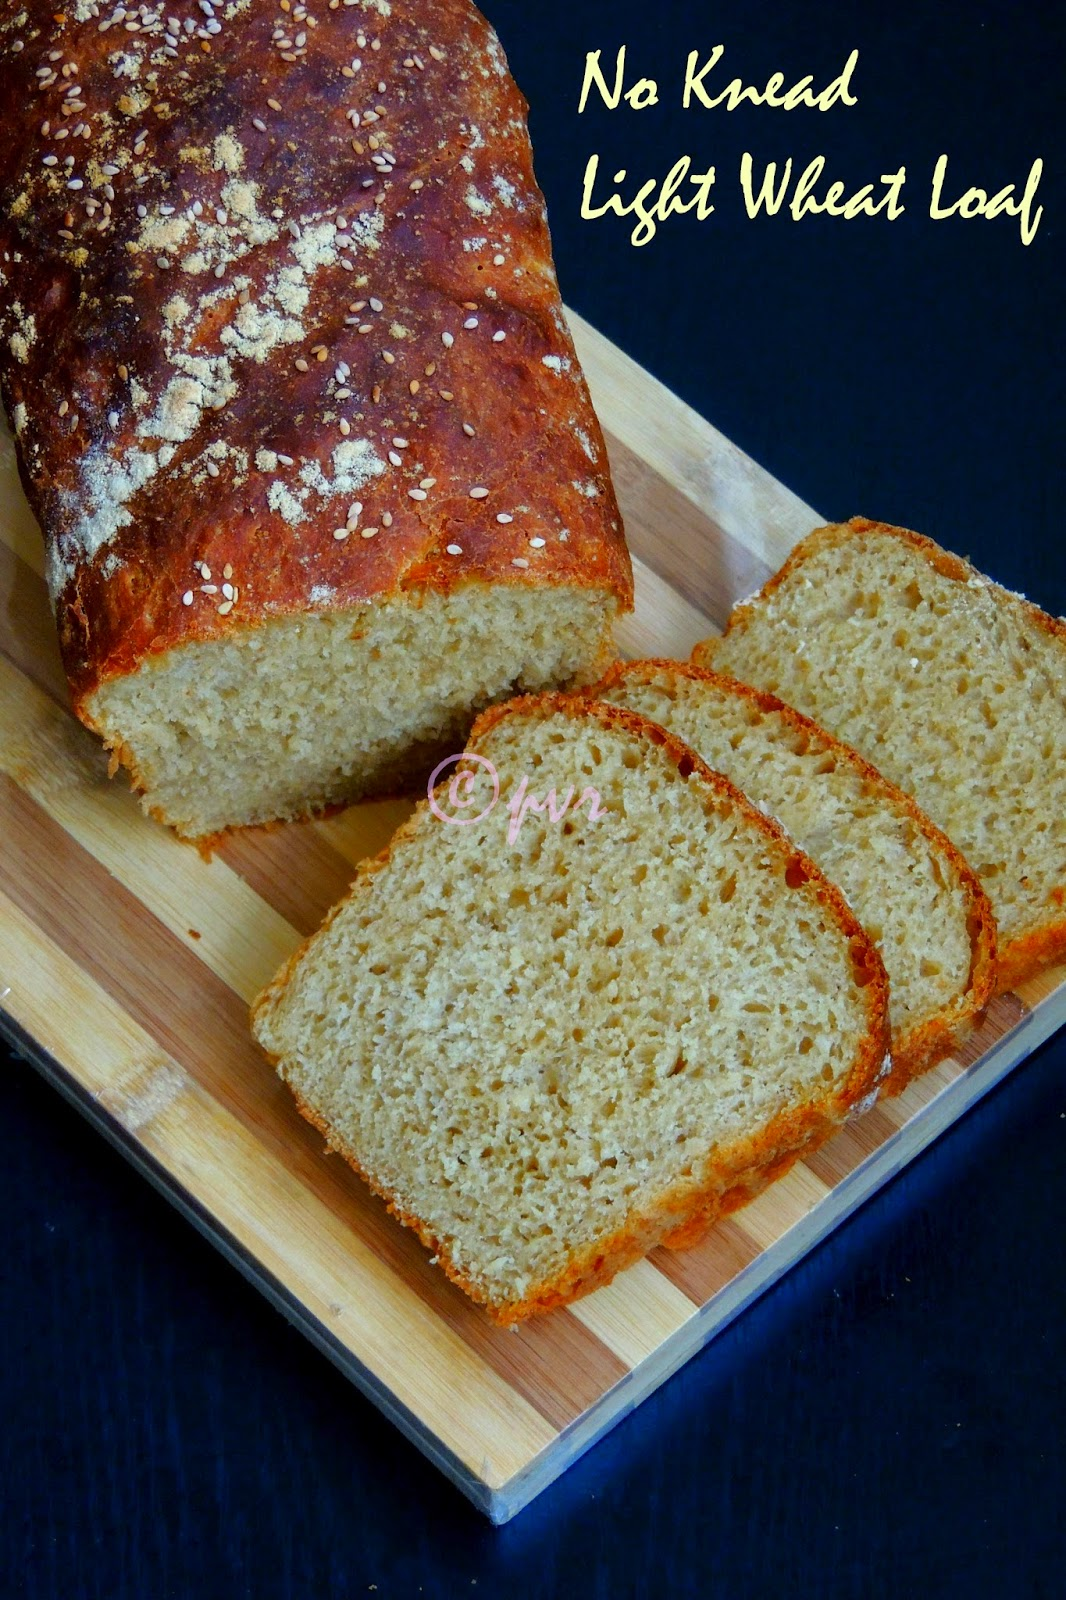 Vegan Wheat Loaf, No Knead Vegan Light wheat loaf